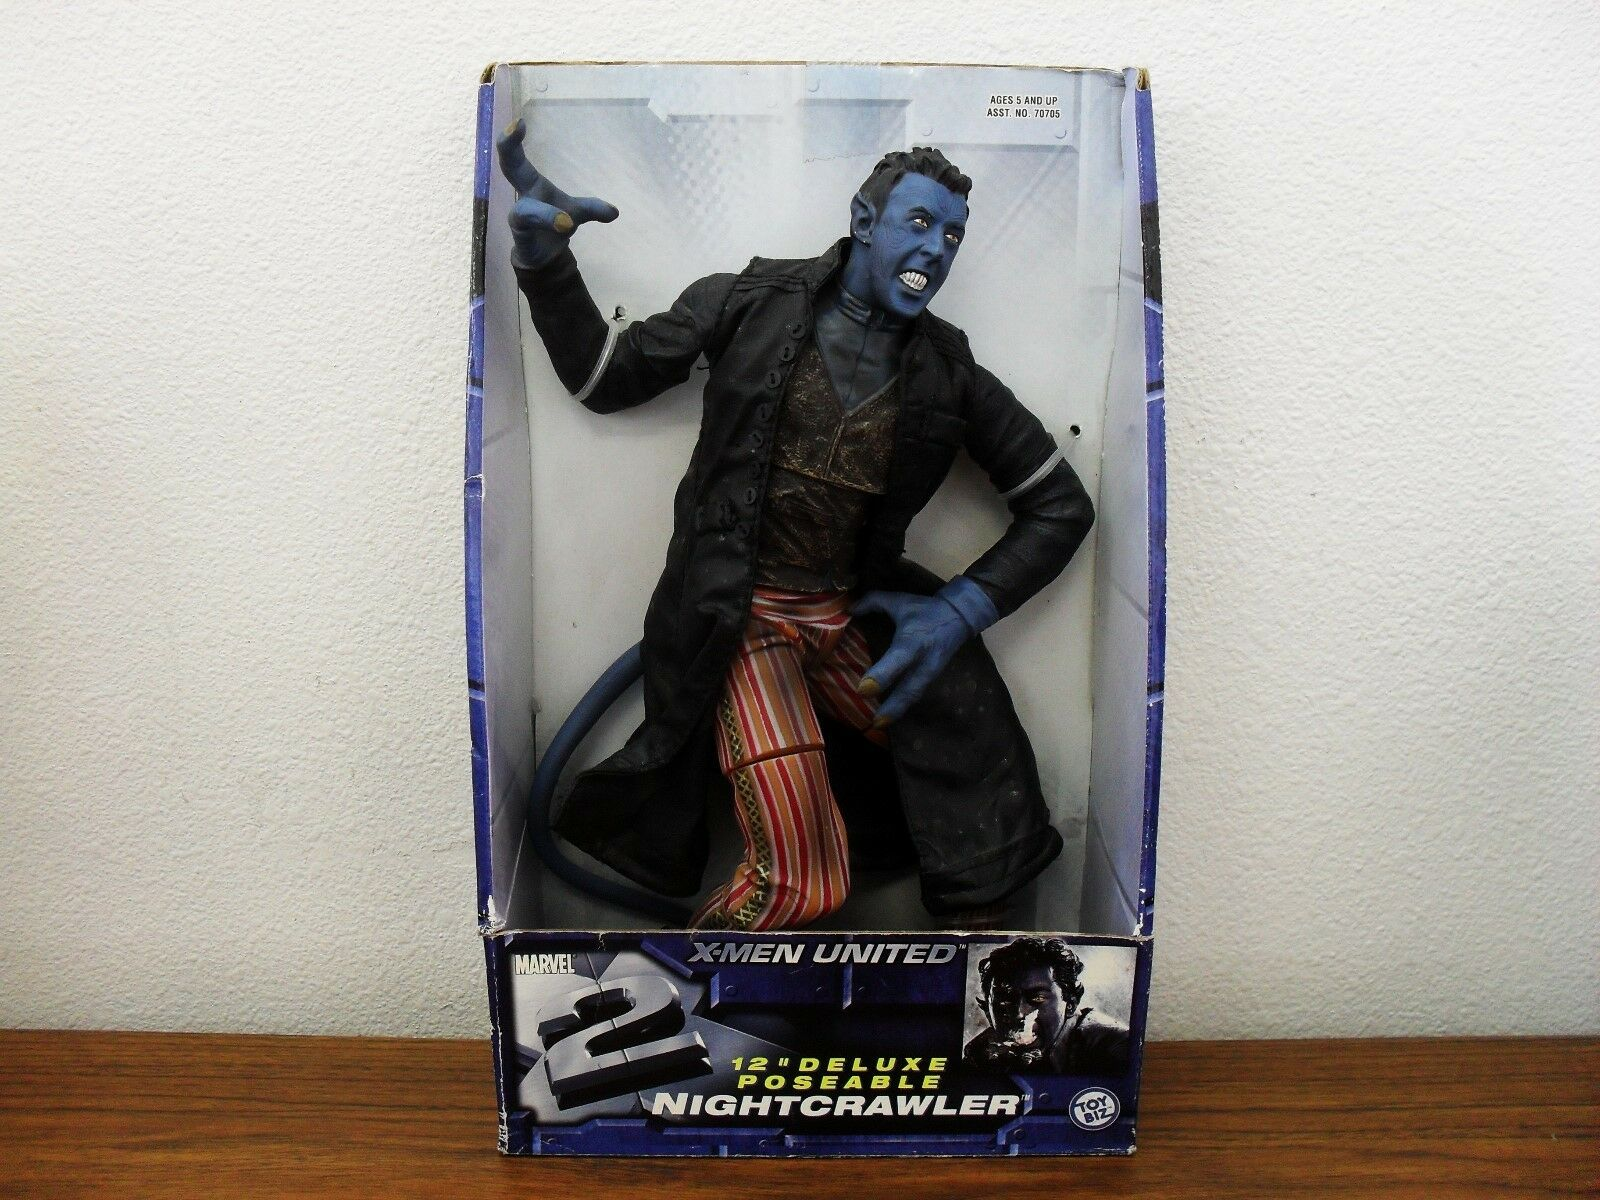 X - men united nightcrawler.